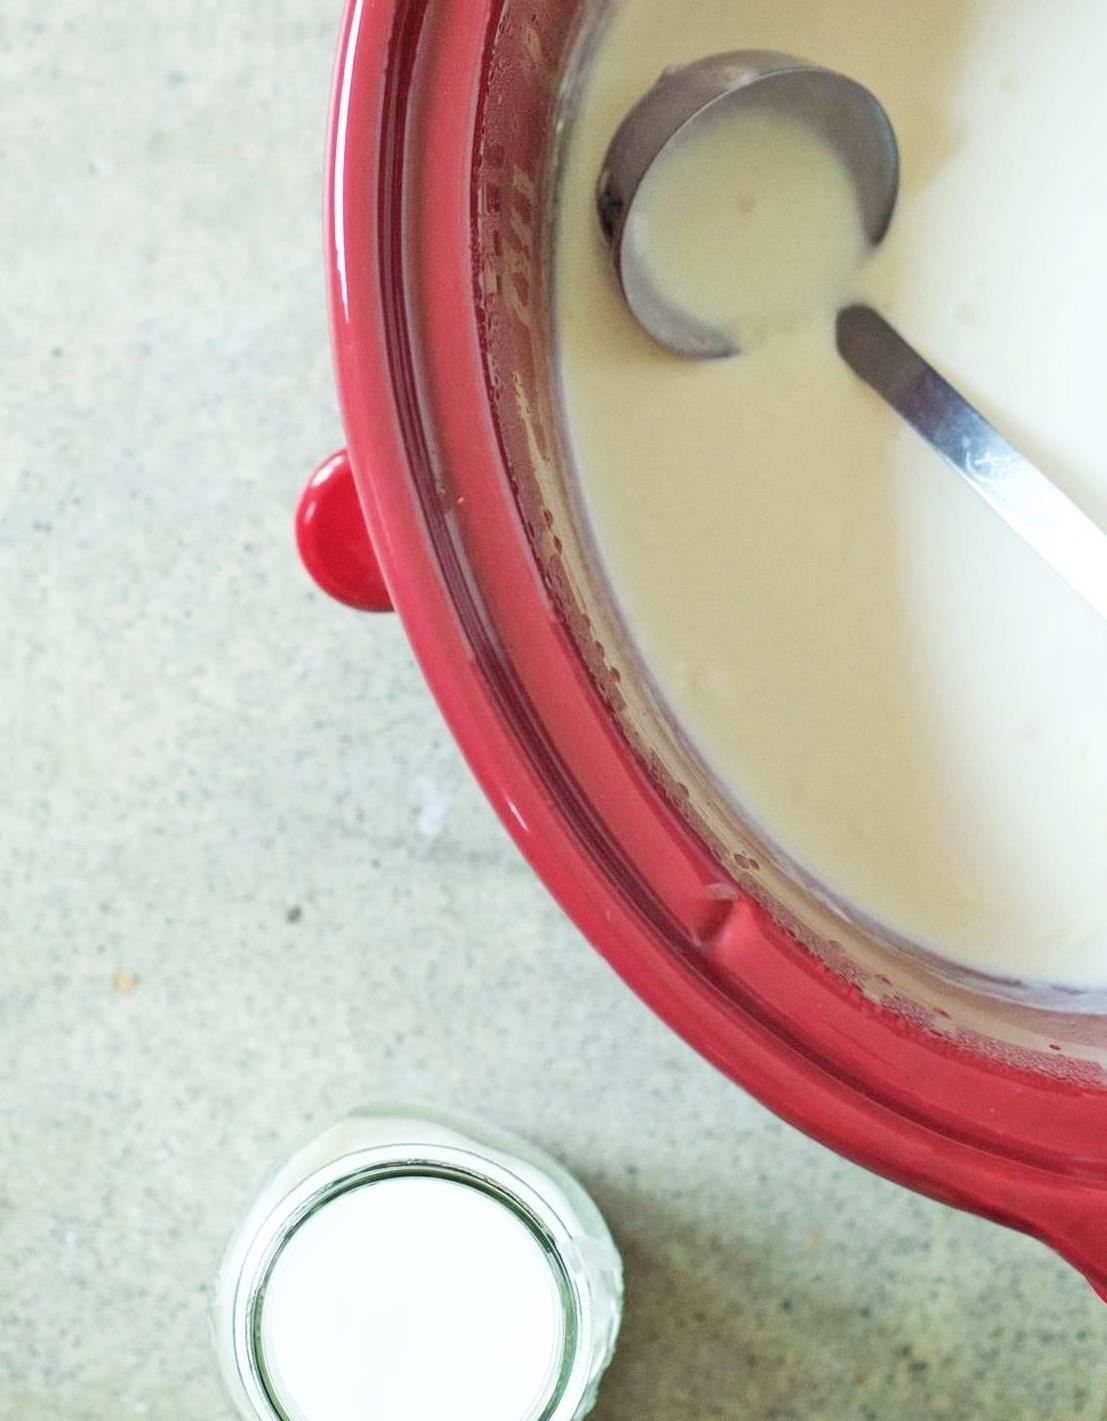 With This Slow Cooker Hack, You'll Never Have to Buy Yogurt Again